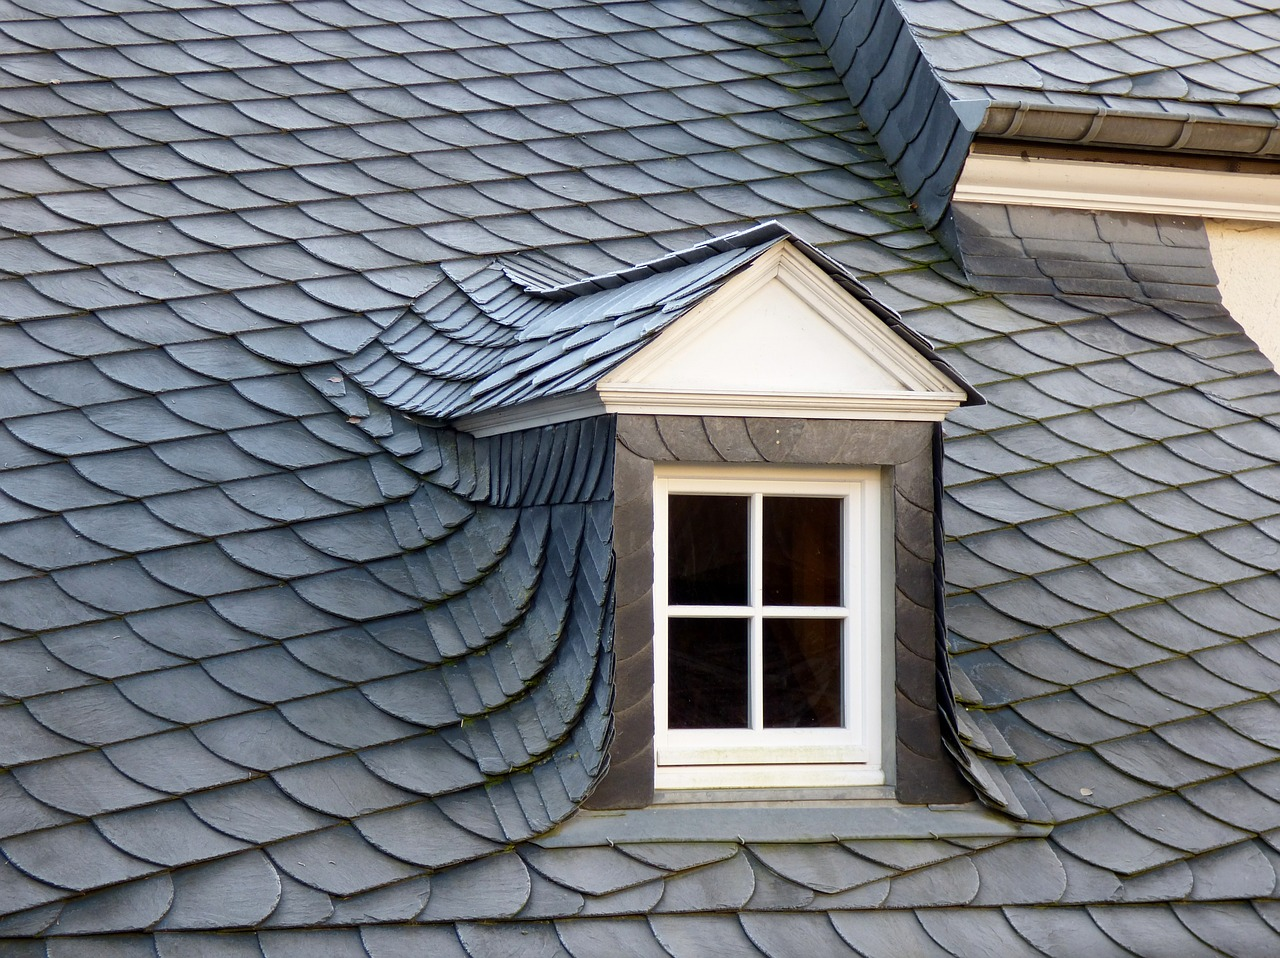 Dormer Covered in Slate